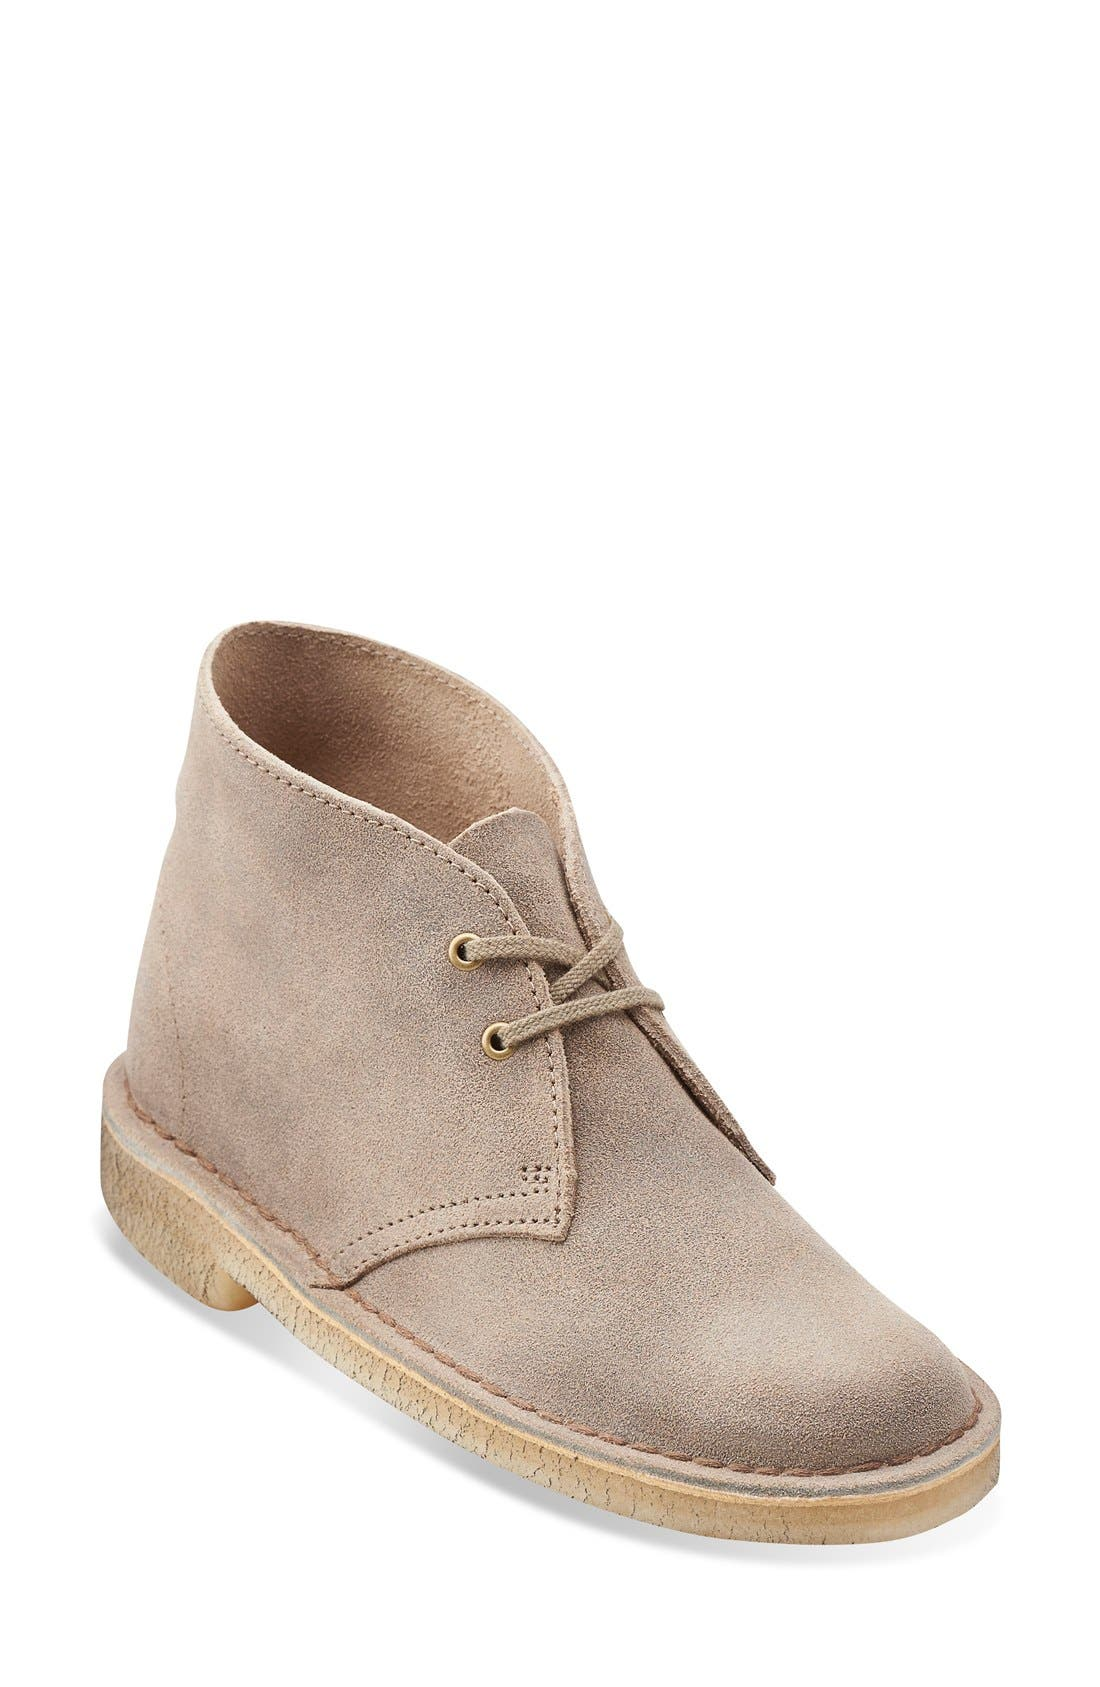 color       Taupe Distressed Suede Desert Boot       Main